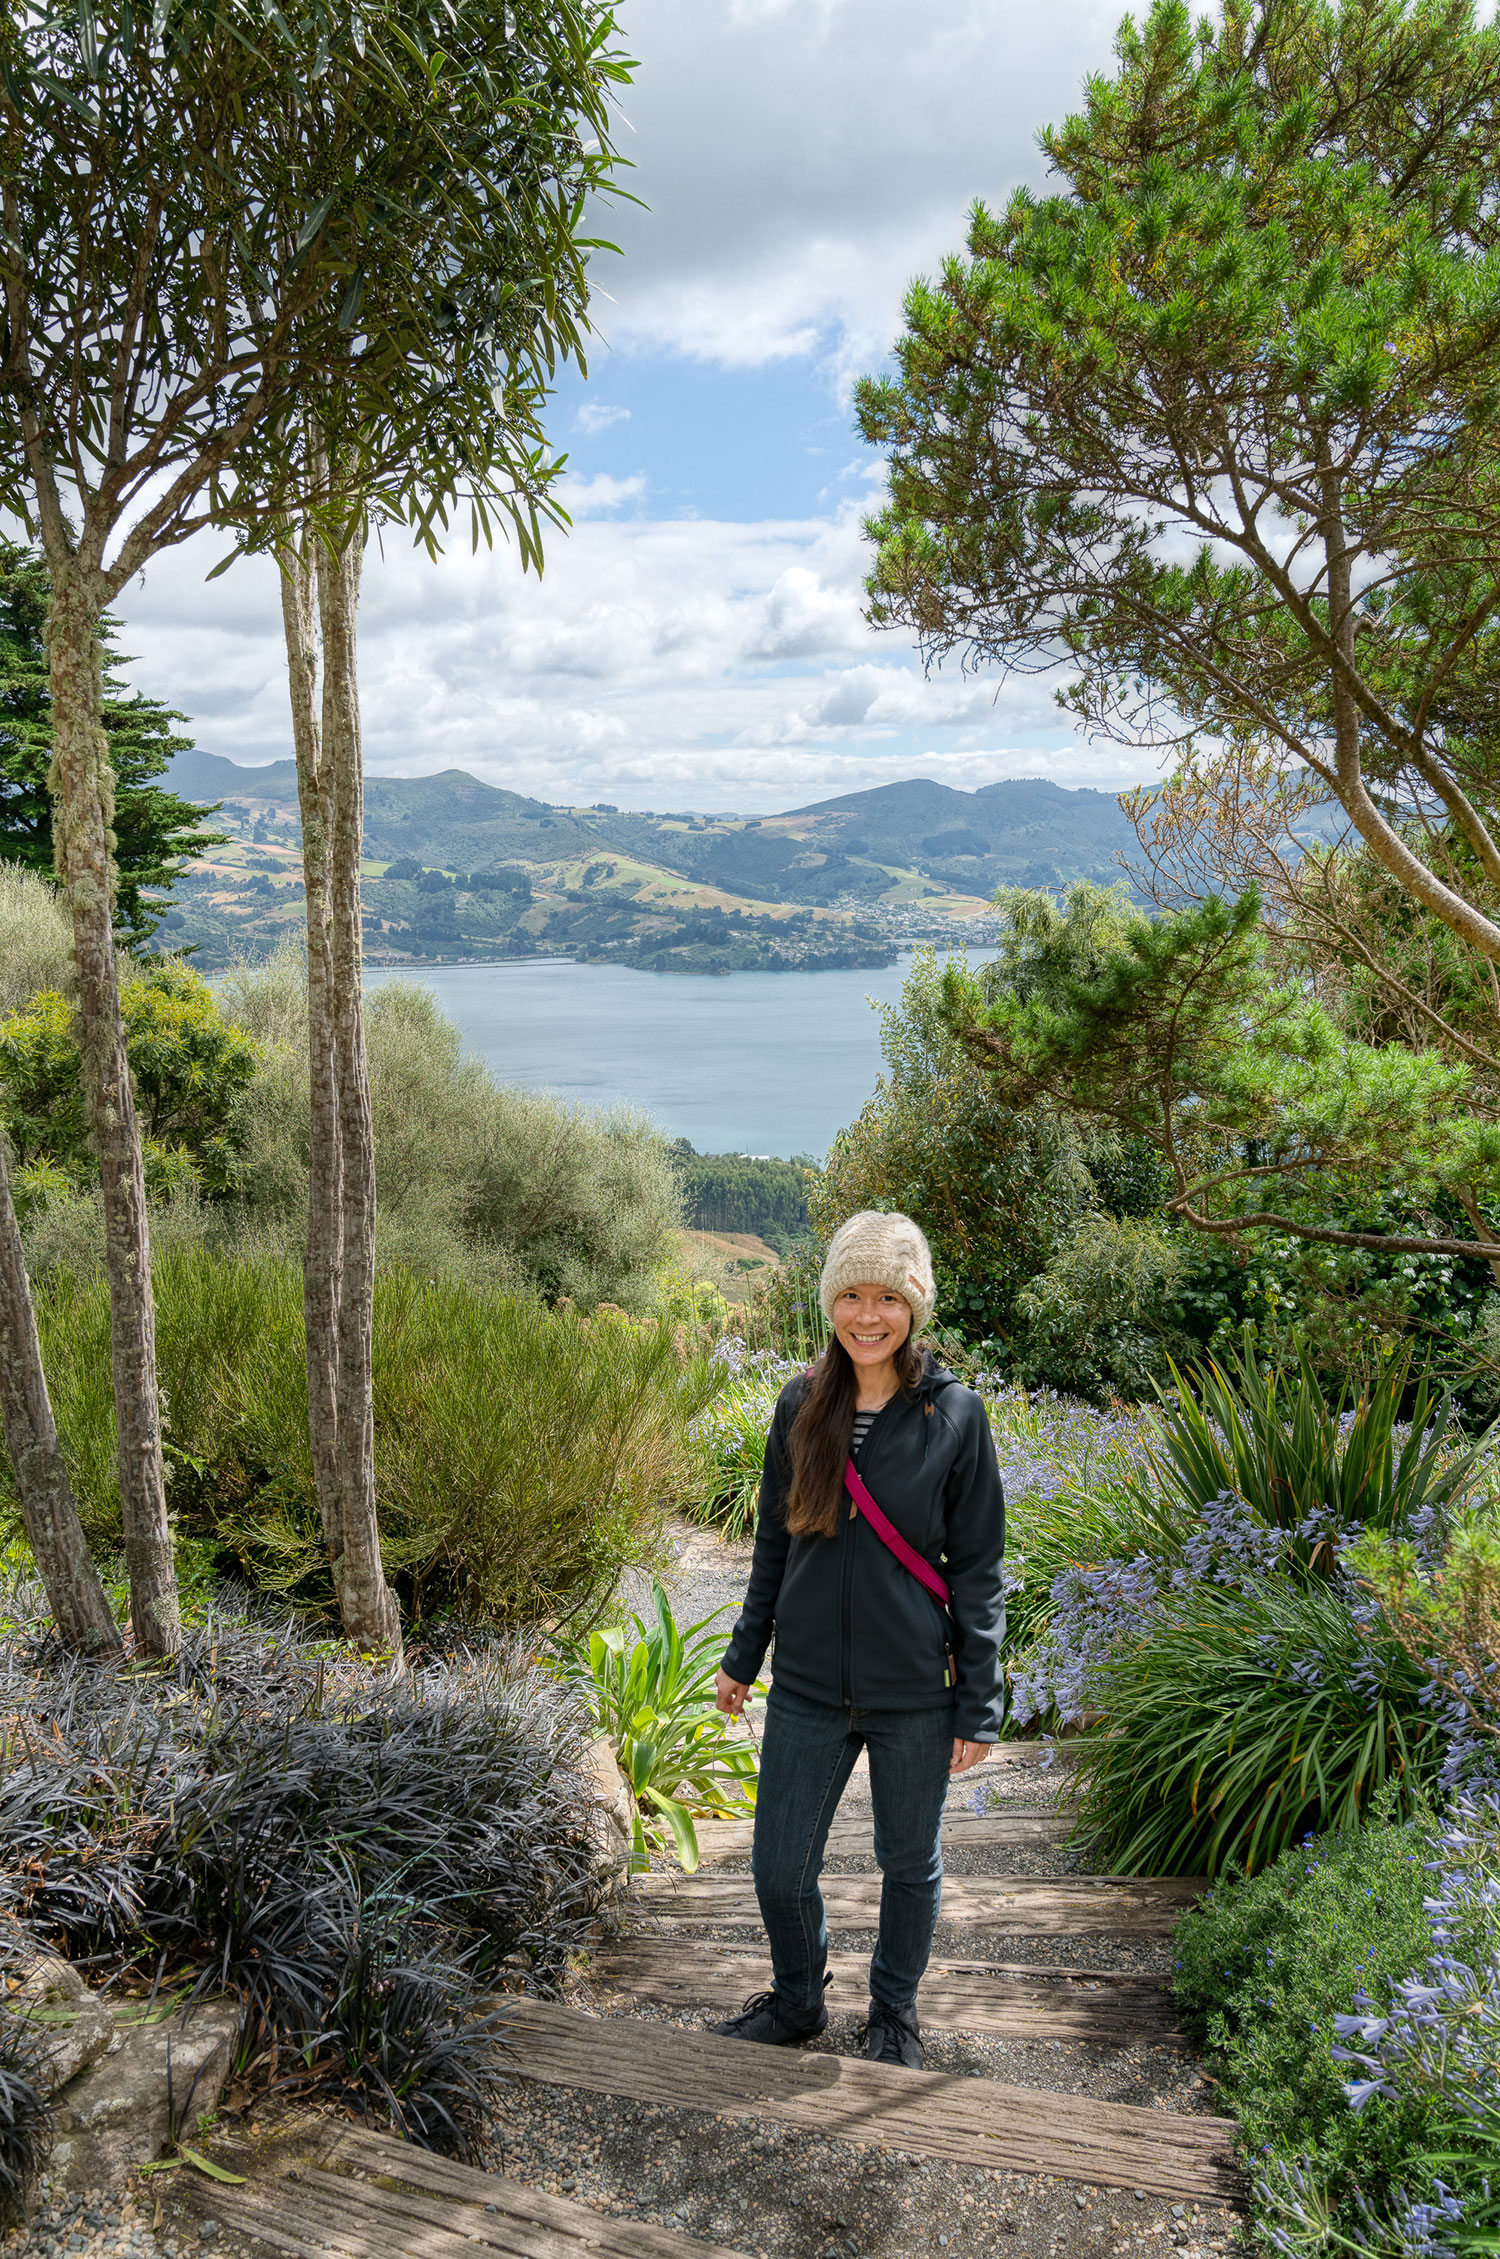 Thaneeya McArdle on the grounds of Larnarch Castle in New Zealand, overlooking Otago Harbour